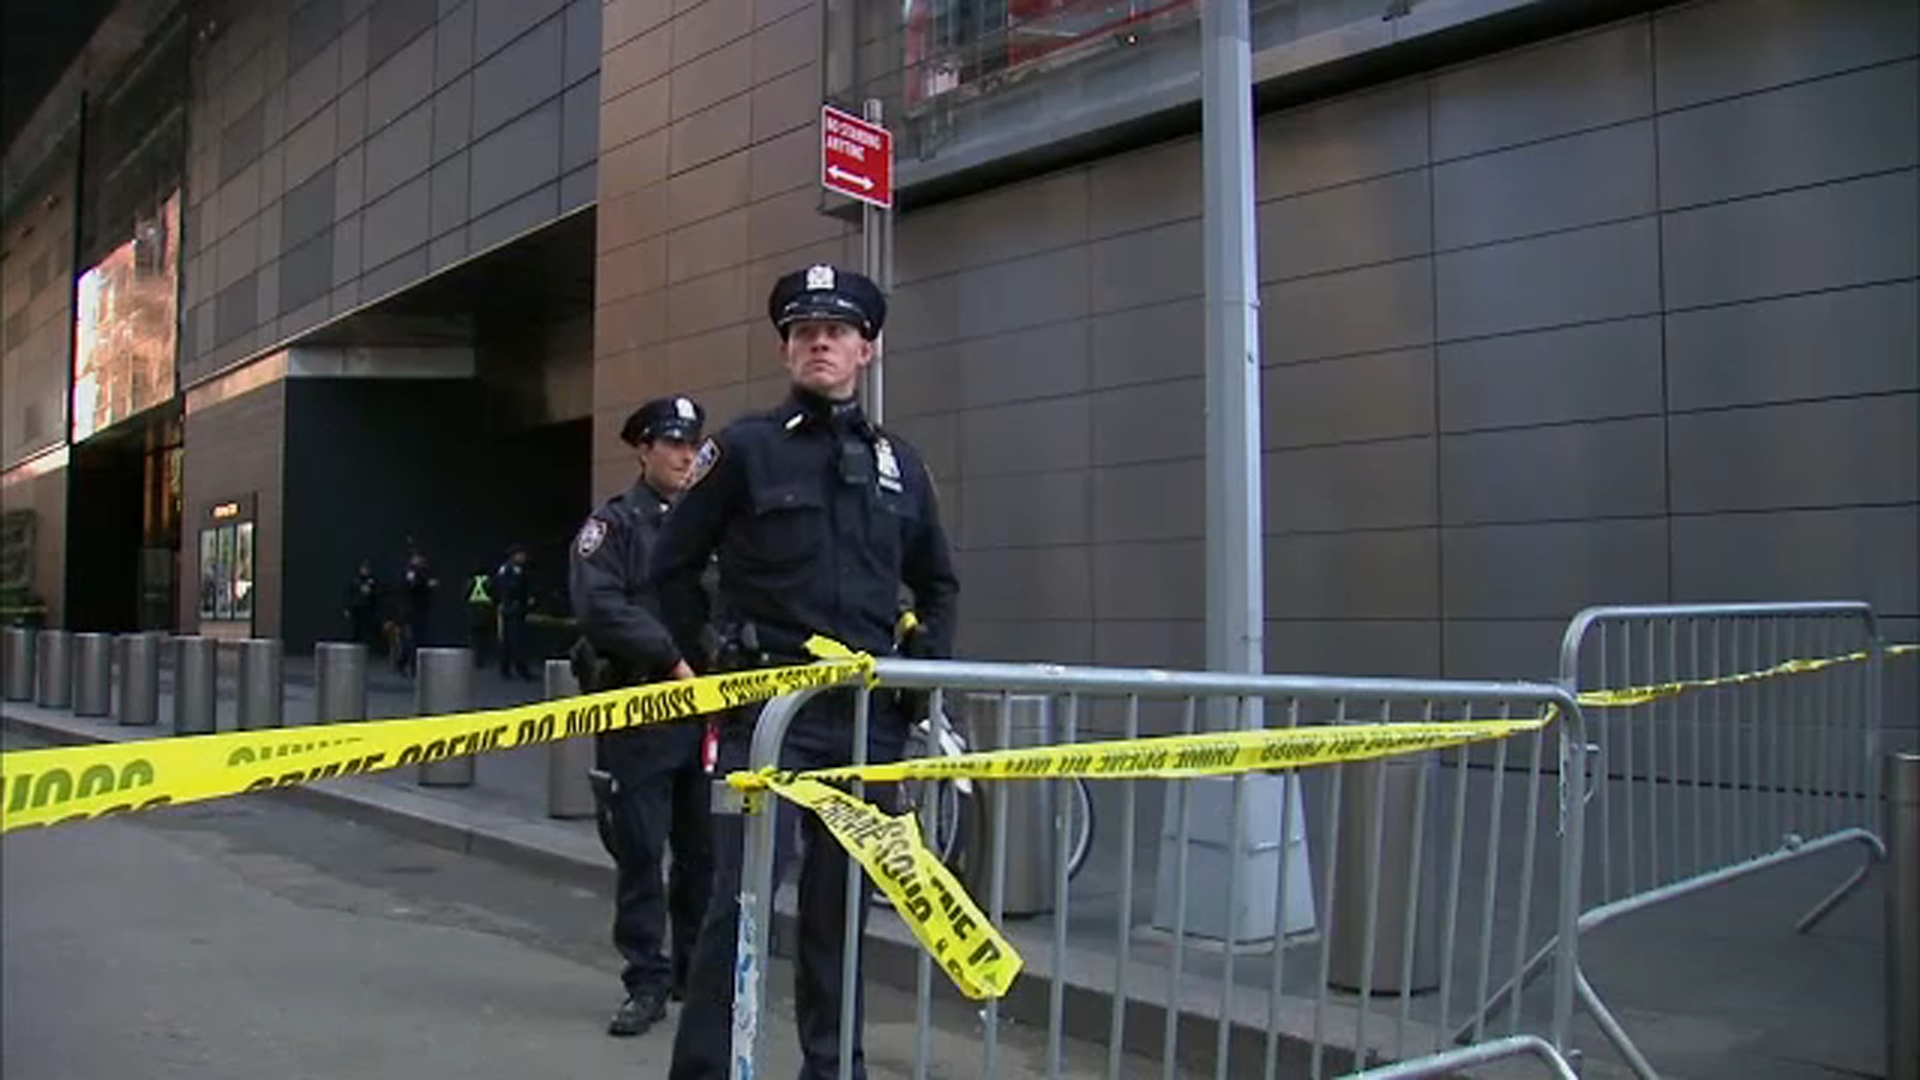 <div class='meta'><div class='origin-logo' data-origin='none'></div><span class='caption-text' data-credit=''>Authorities are shown on the scene of a suspicious package near the CNN building in New York.</span></div>